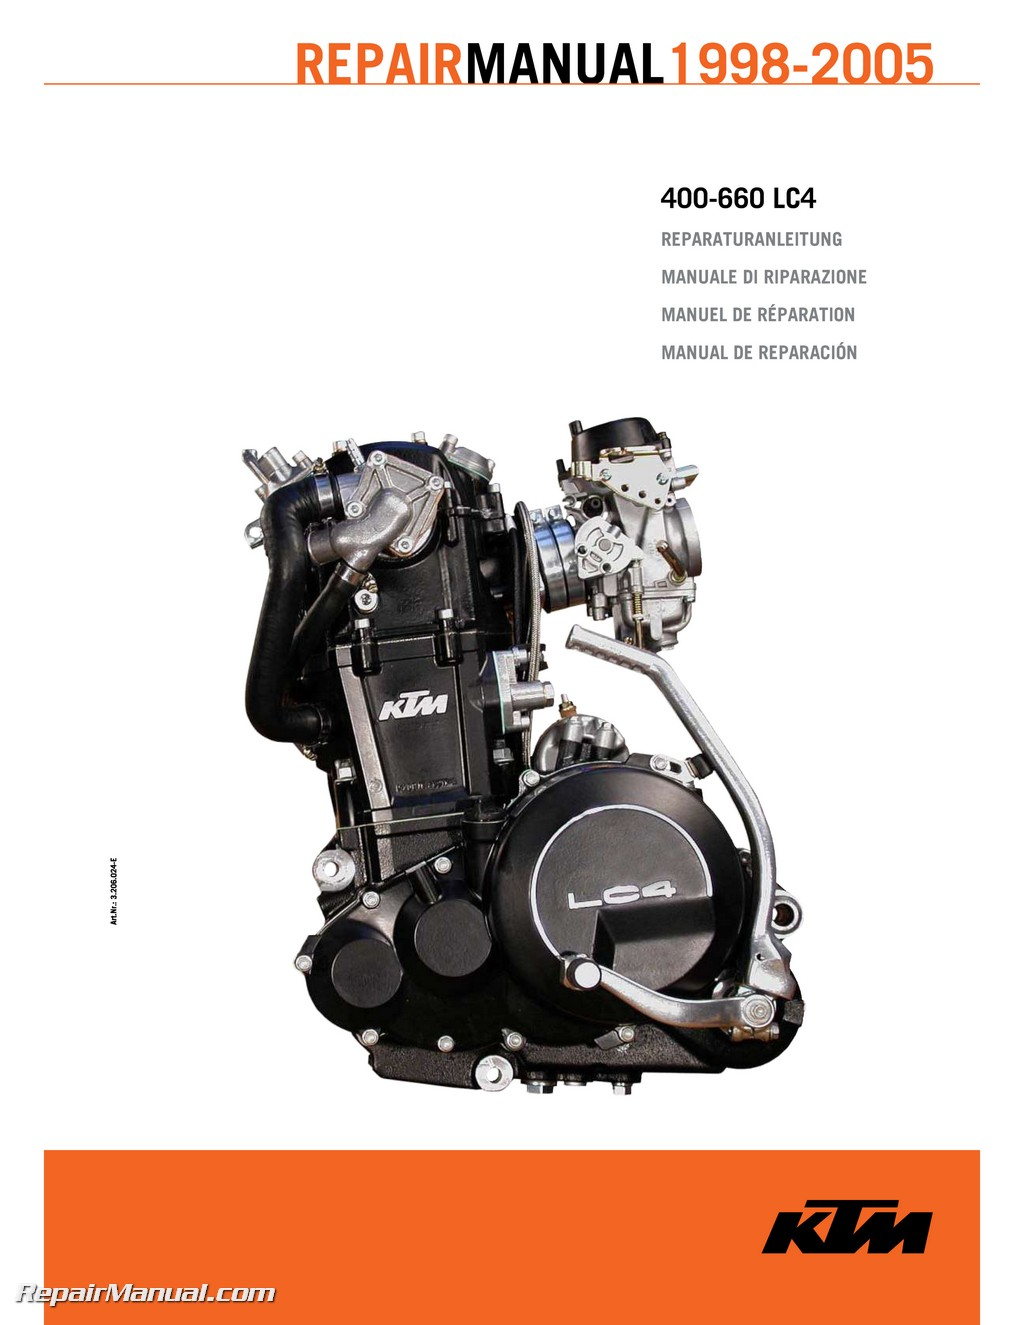 1998 2005 ktm 400 660 lc4 paper engine repair manual rh repairmanual com ktm lc4 2002 manual ktm lc4 manual pdf